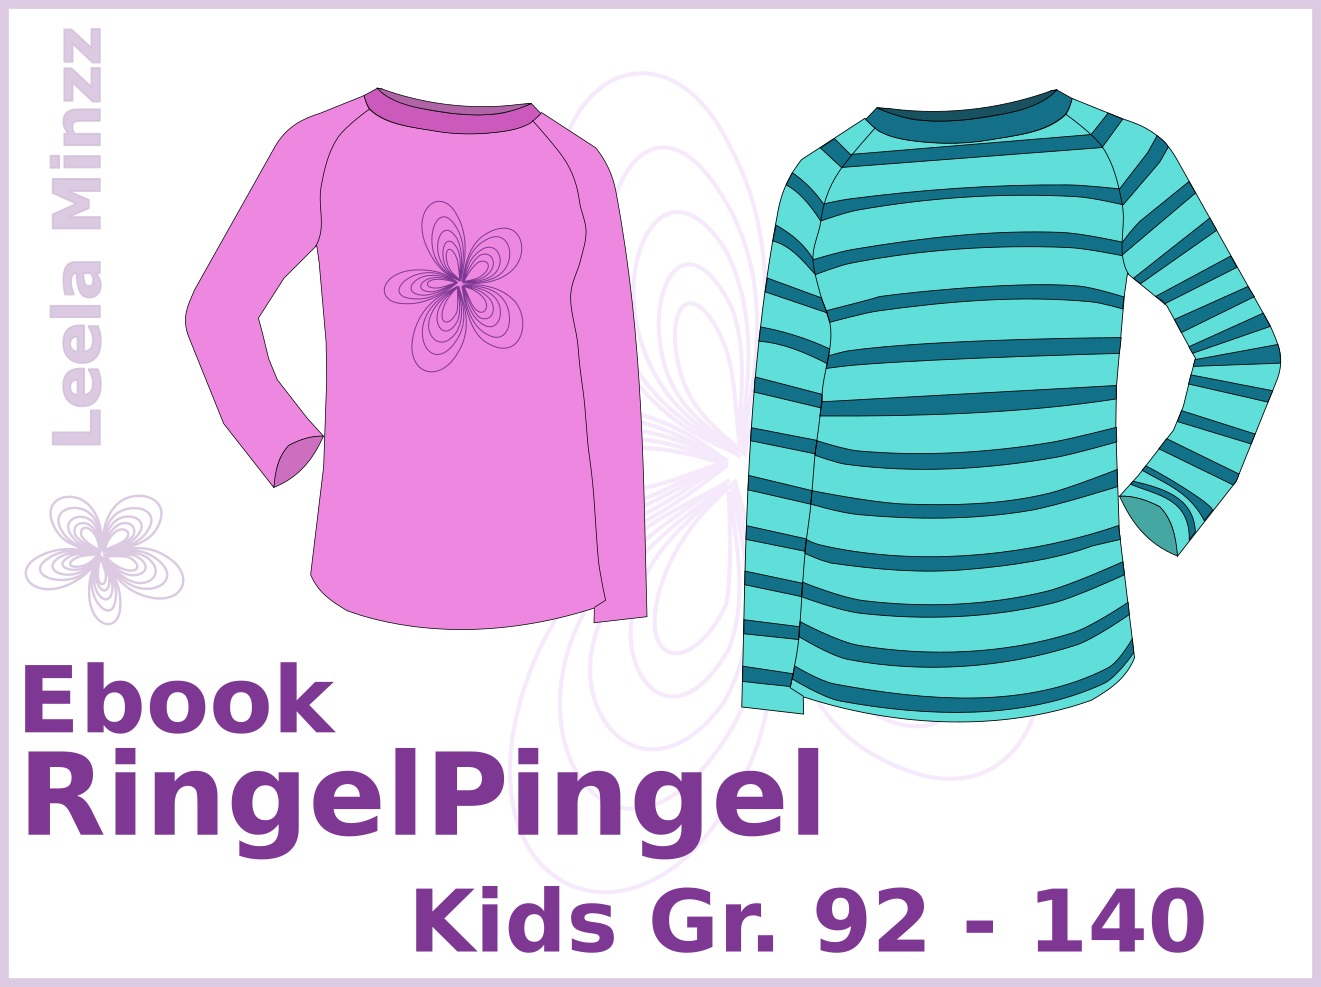 Ebook RingelPingel Kids